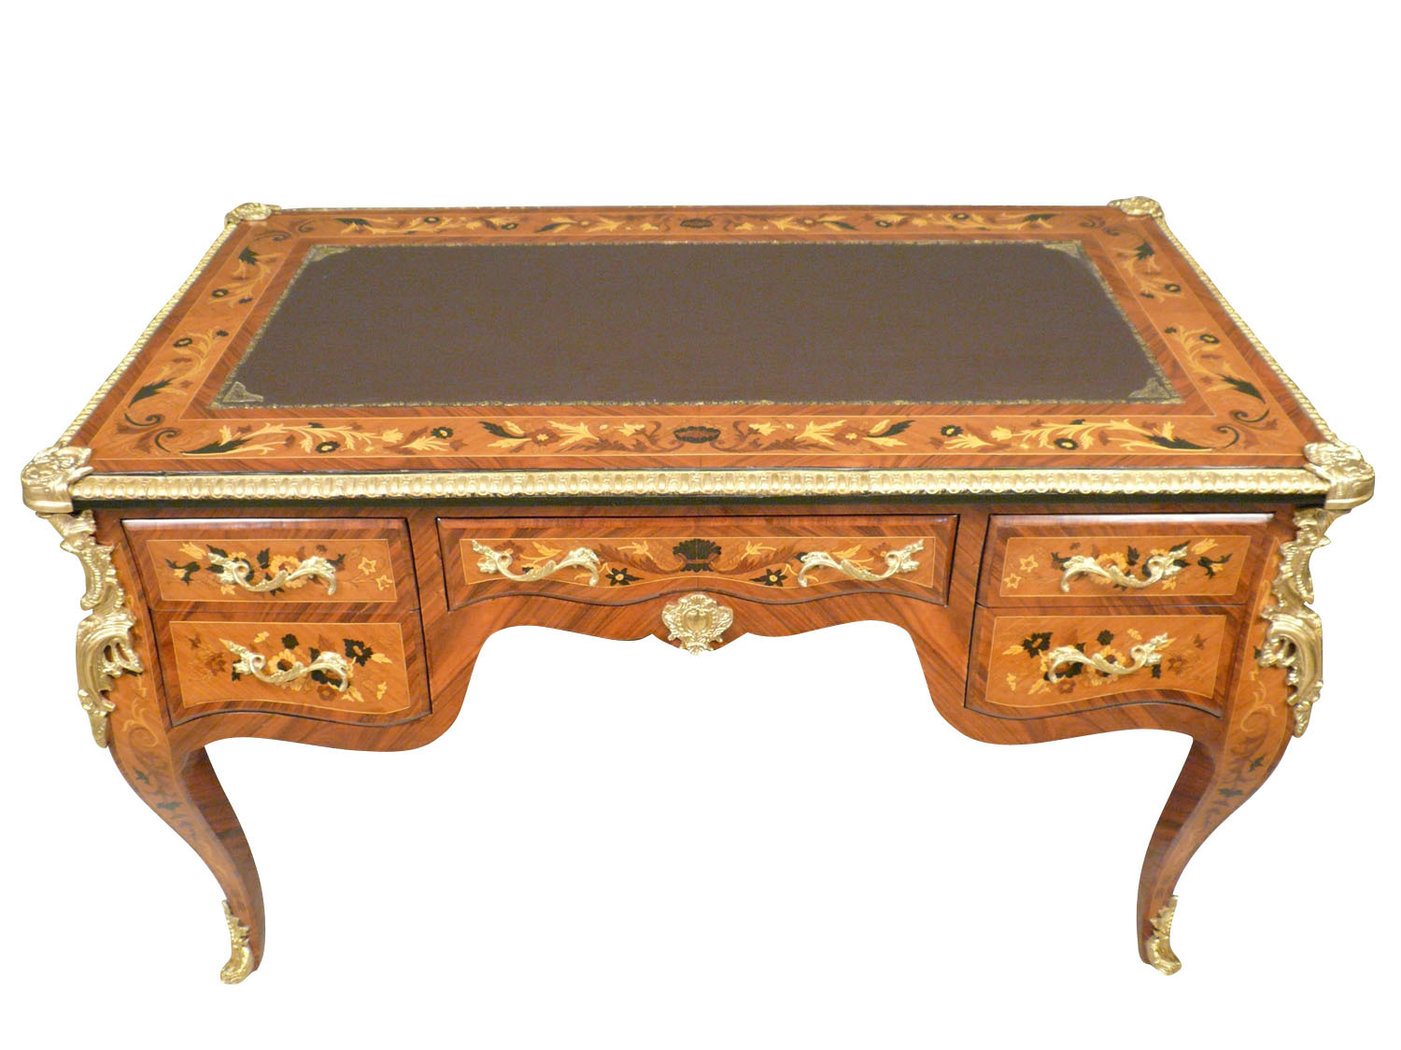 Bureau louis xv vendre meuble louis xv for Meuble louis xv